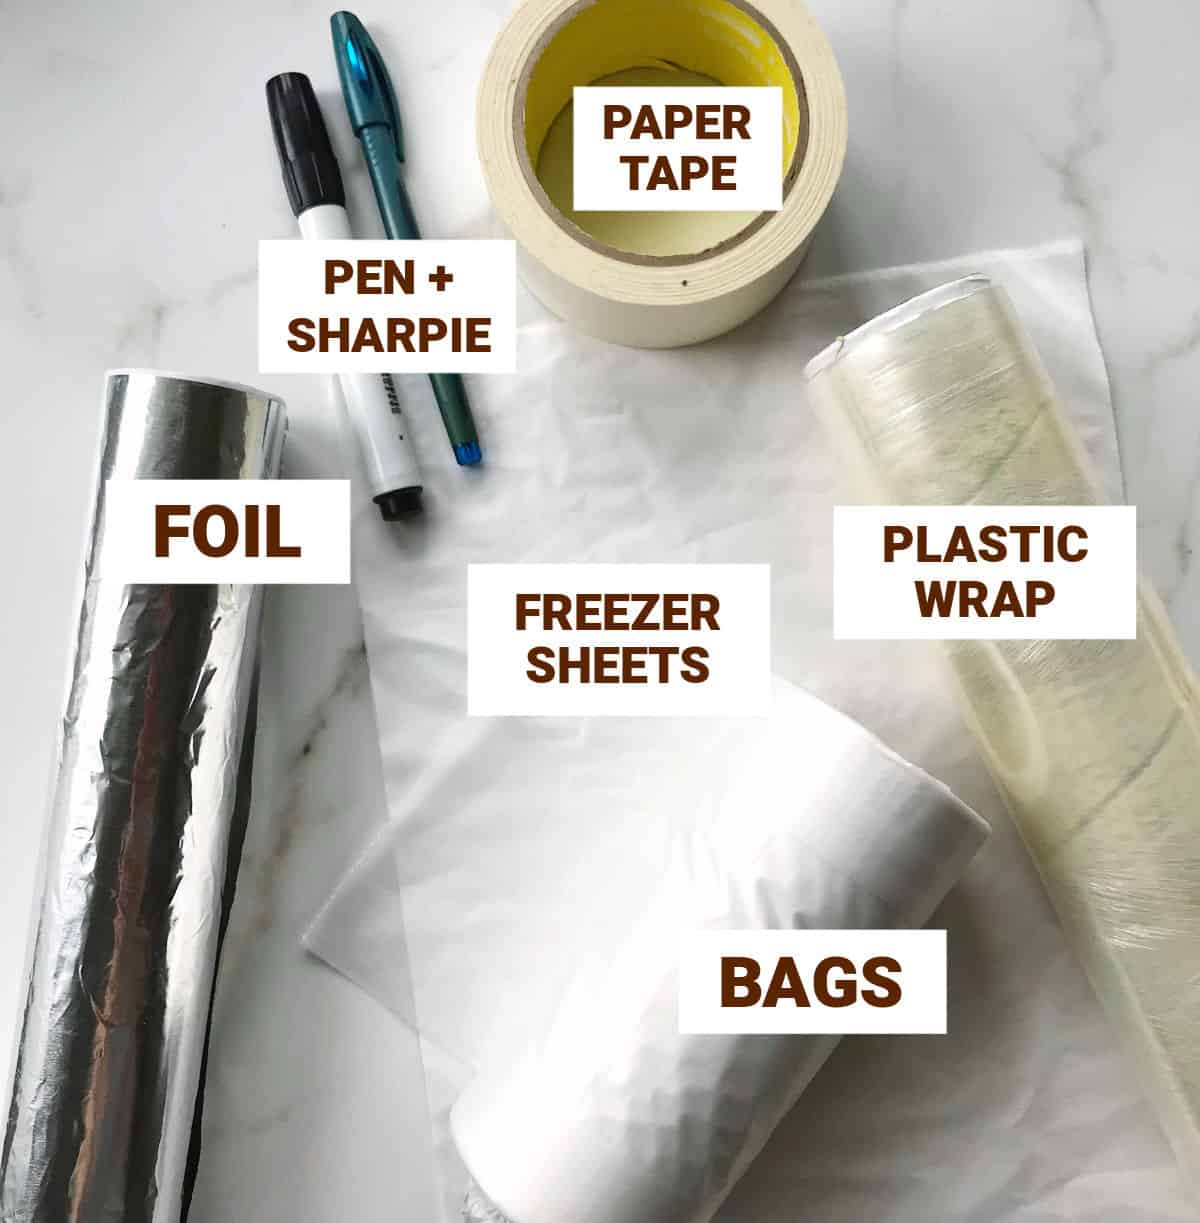 Pens, foil and plastic wrap, tape, bags on white marble surface